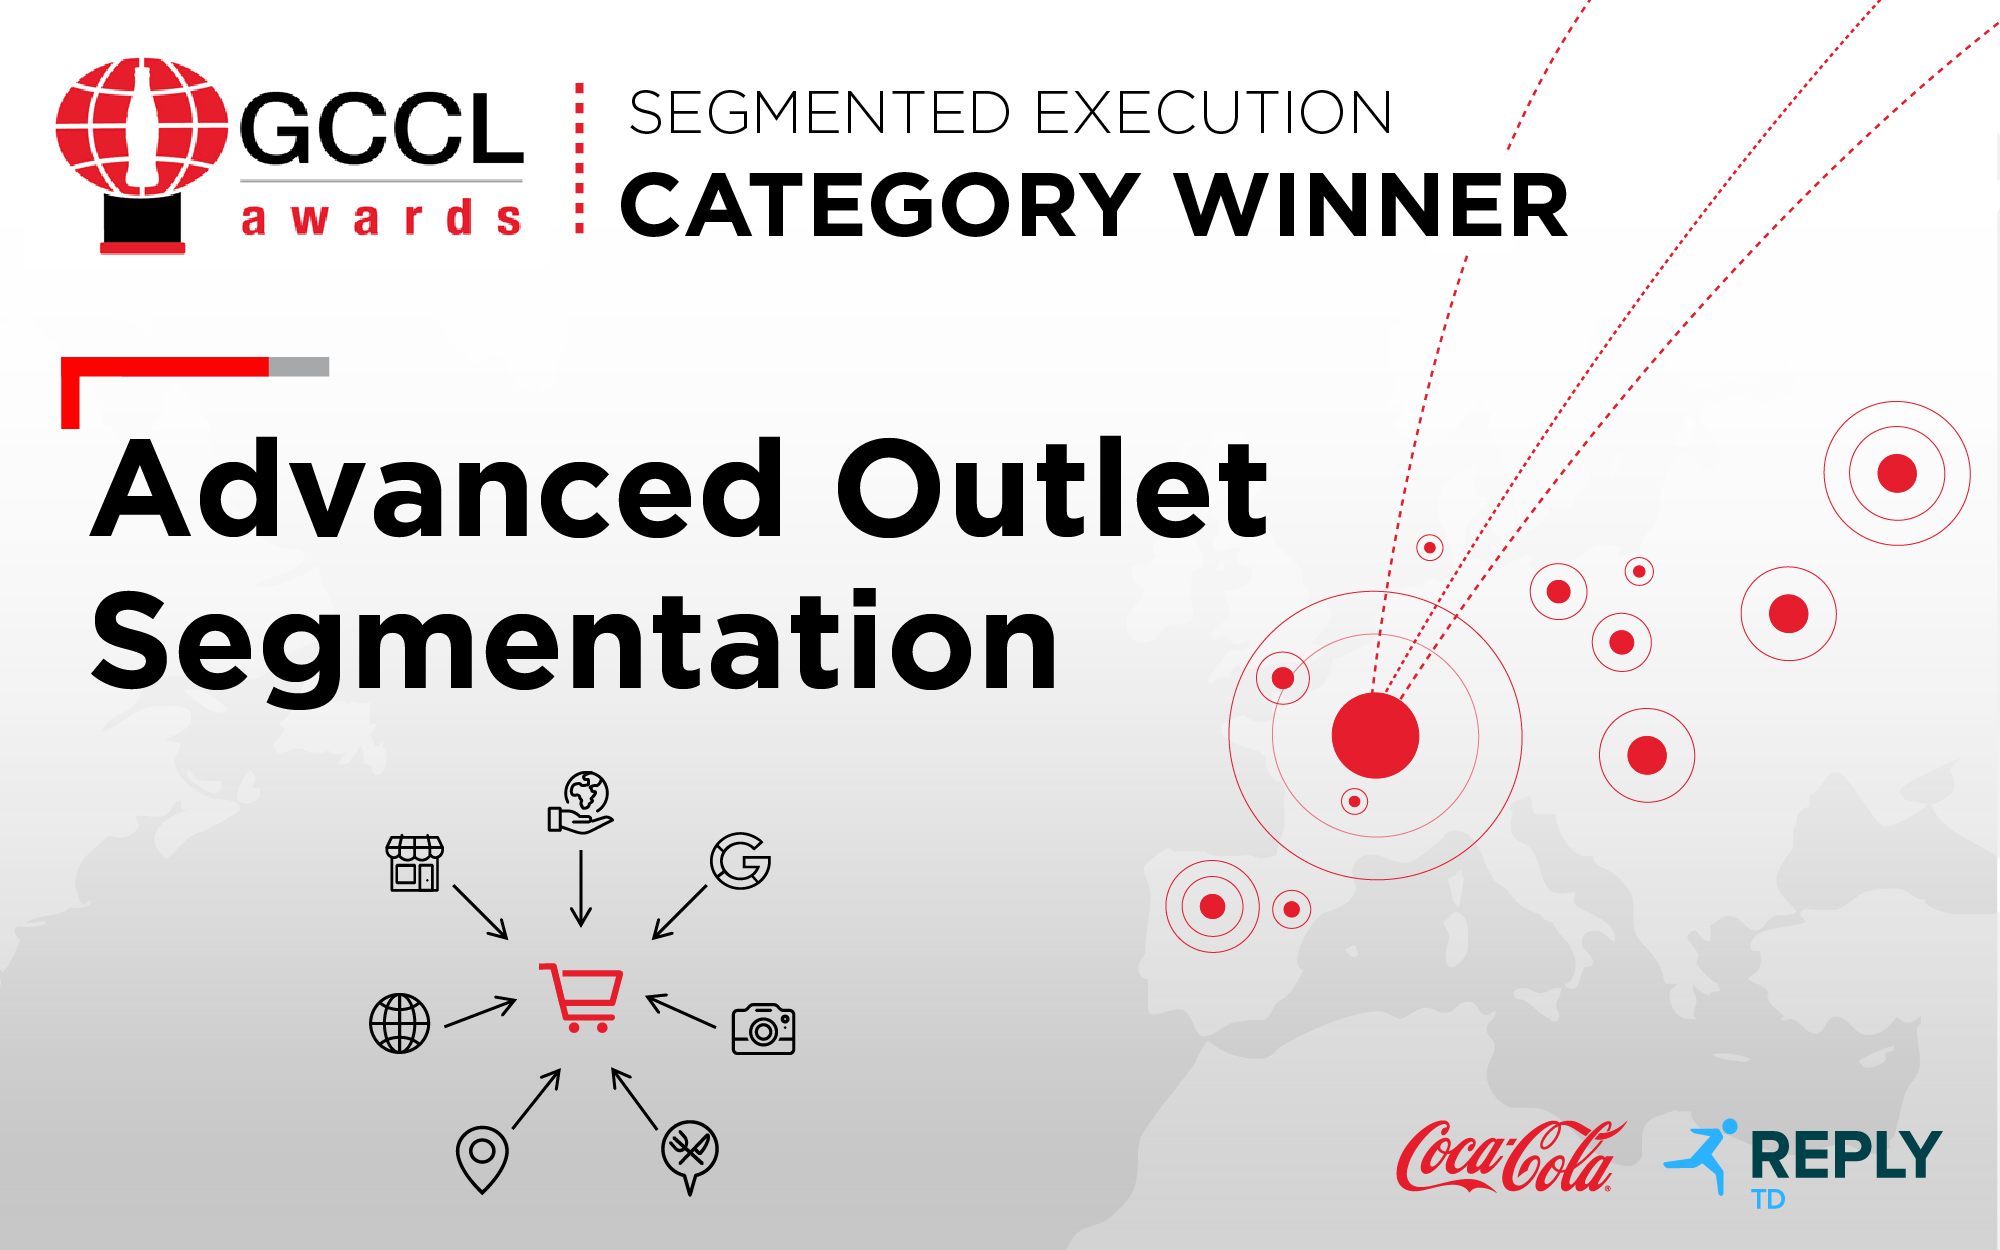 GCCL Award for Joint Project with Coca-Cola